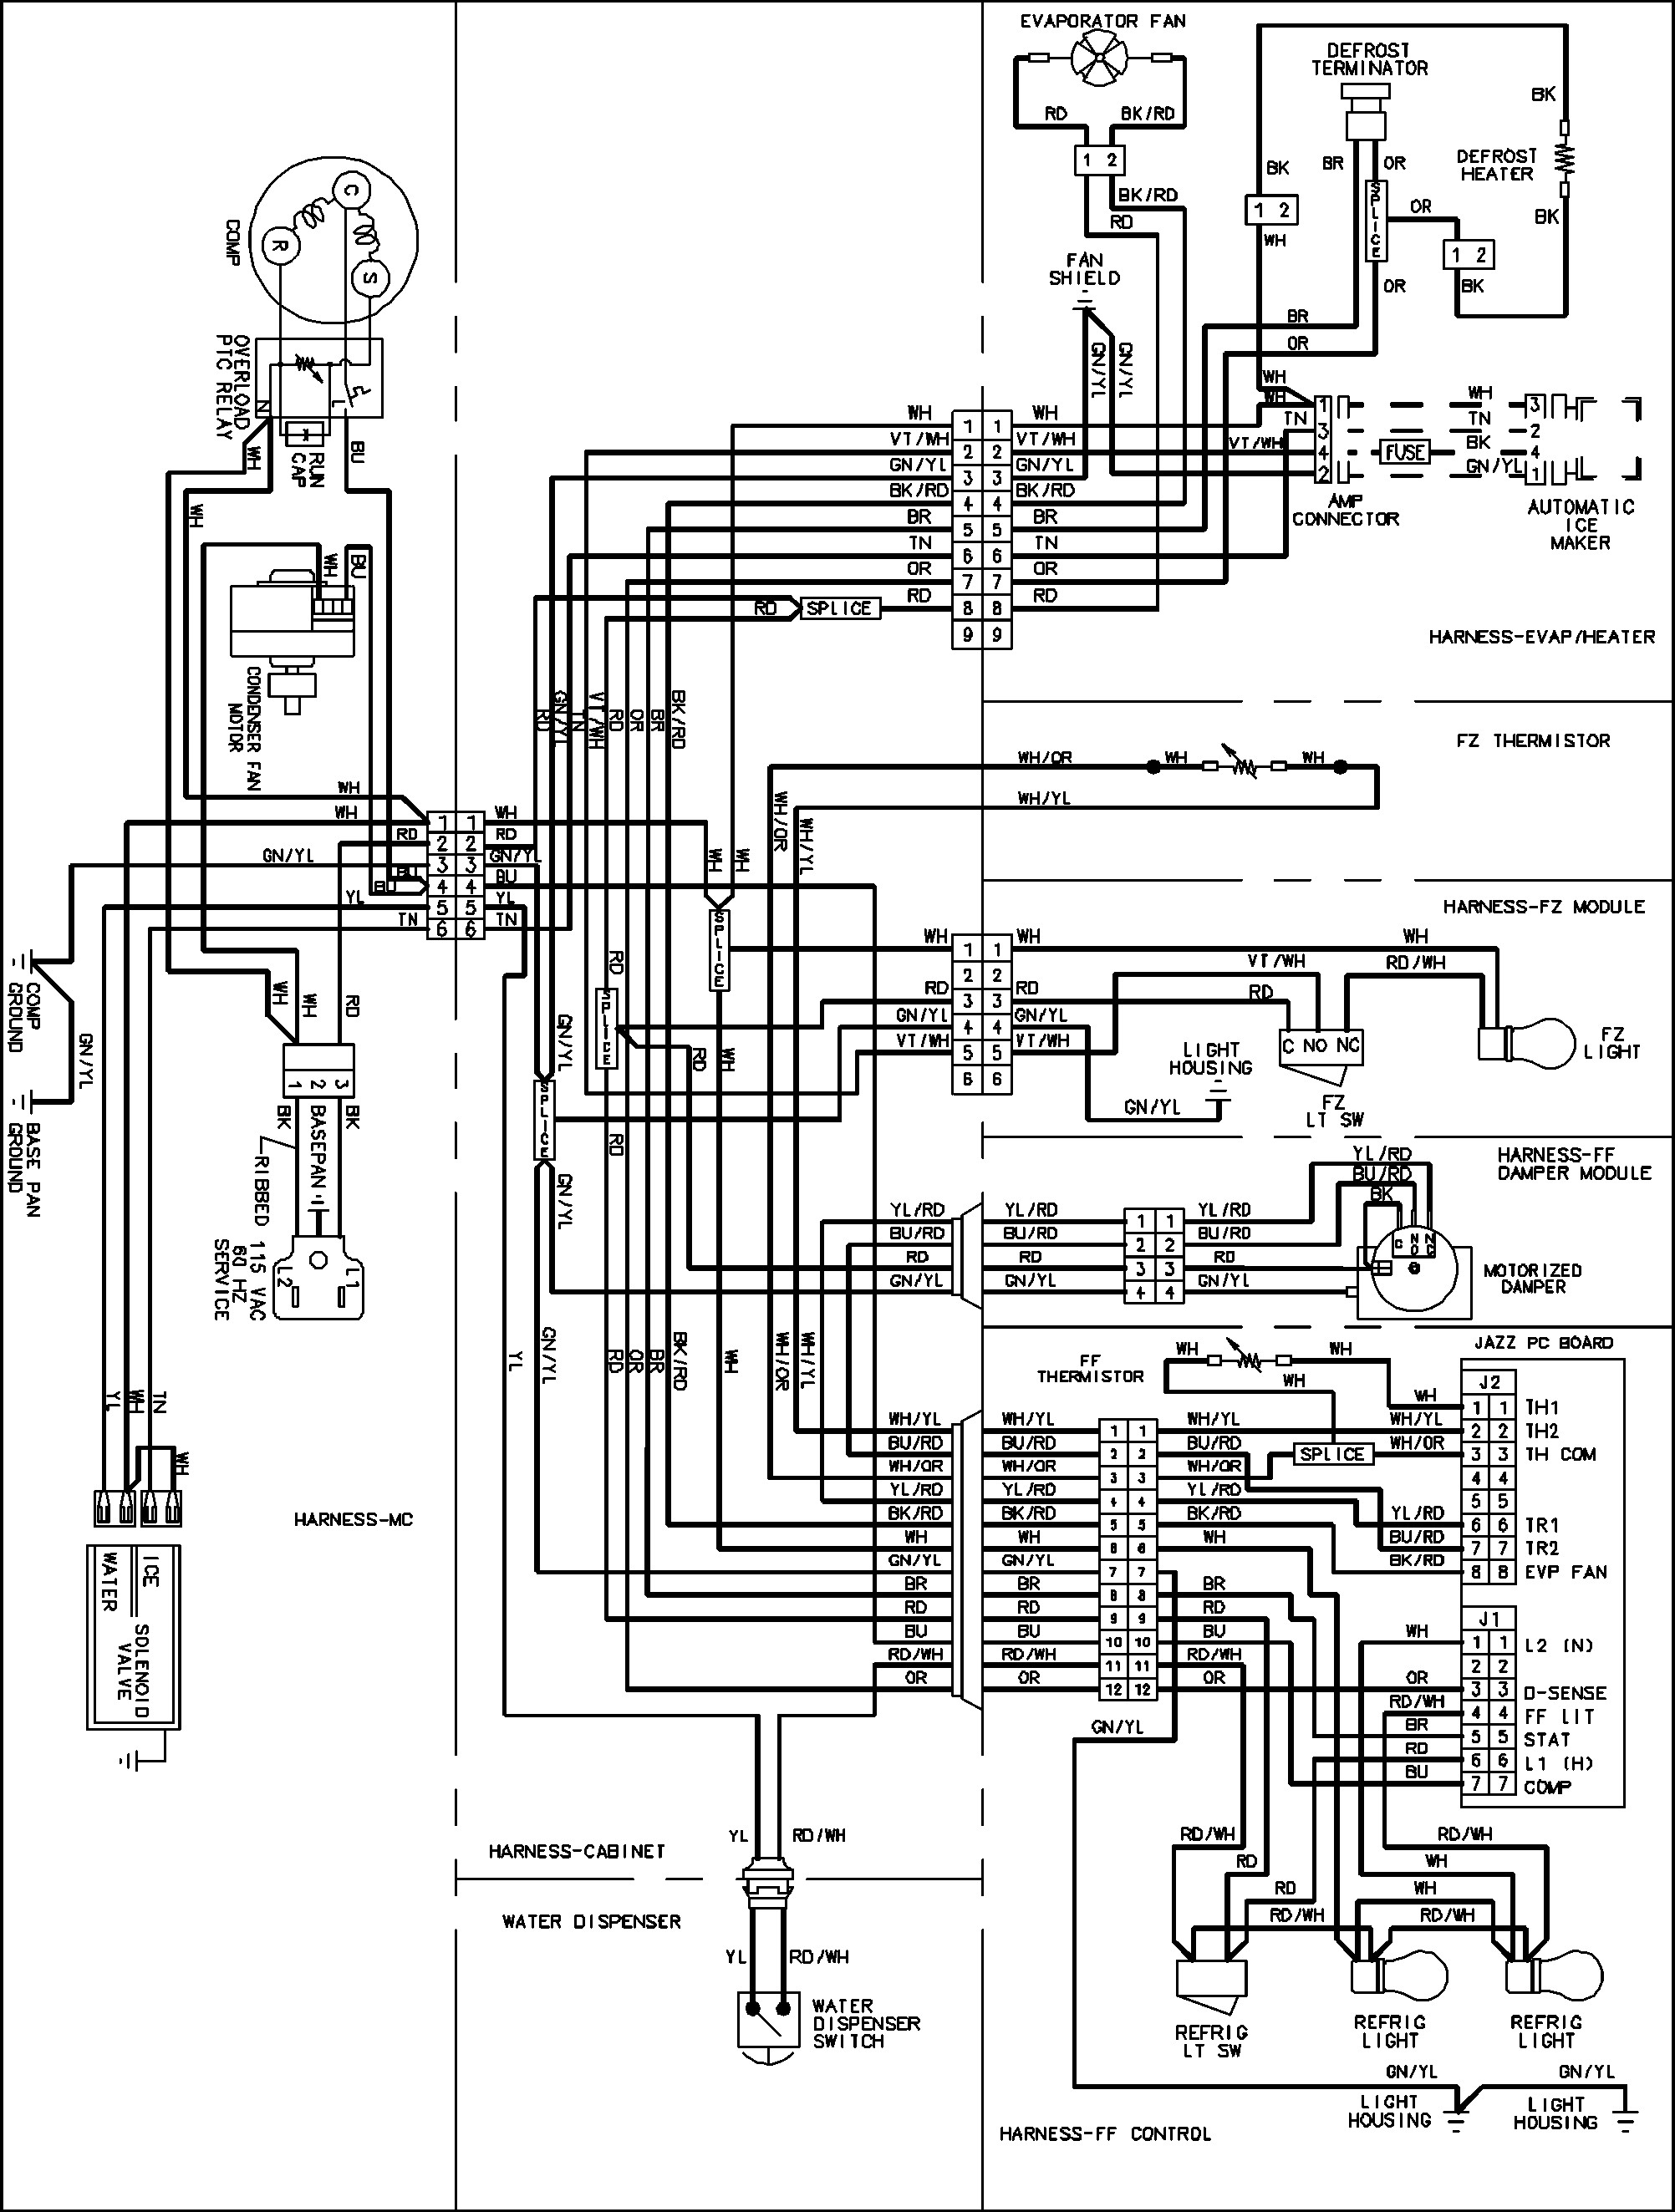 amana wiring diagrams diagram in whirlpool refrigerator health shop me wiring  diagram for whirlpool fridge freezer